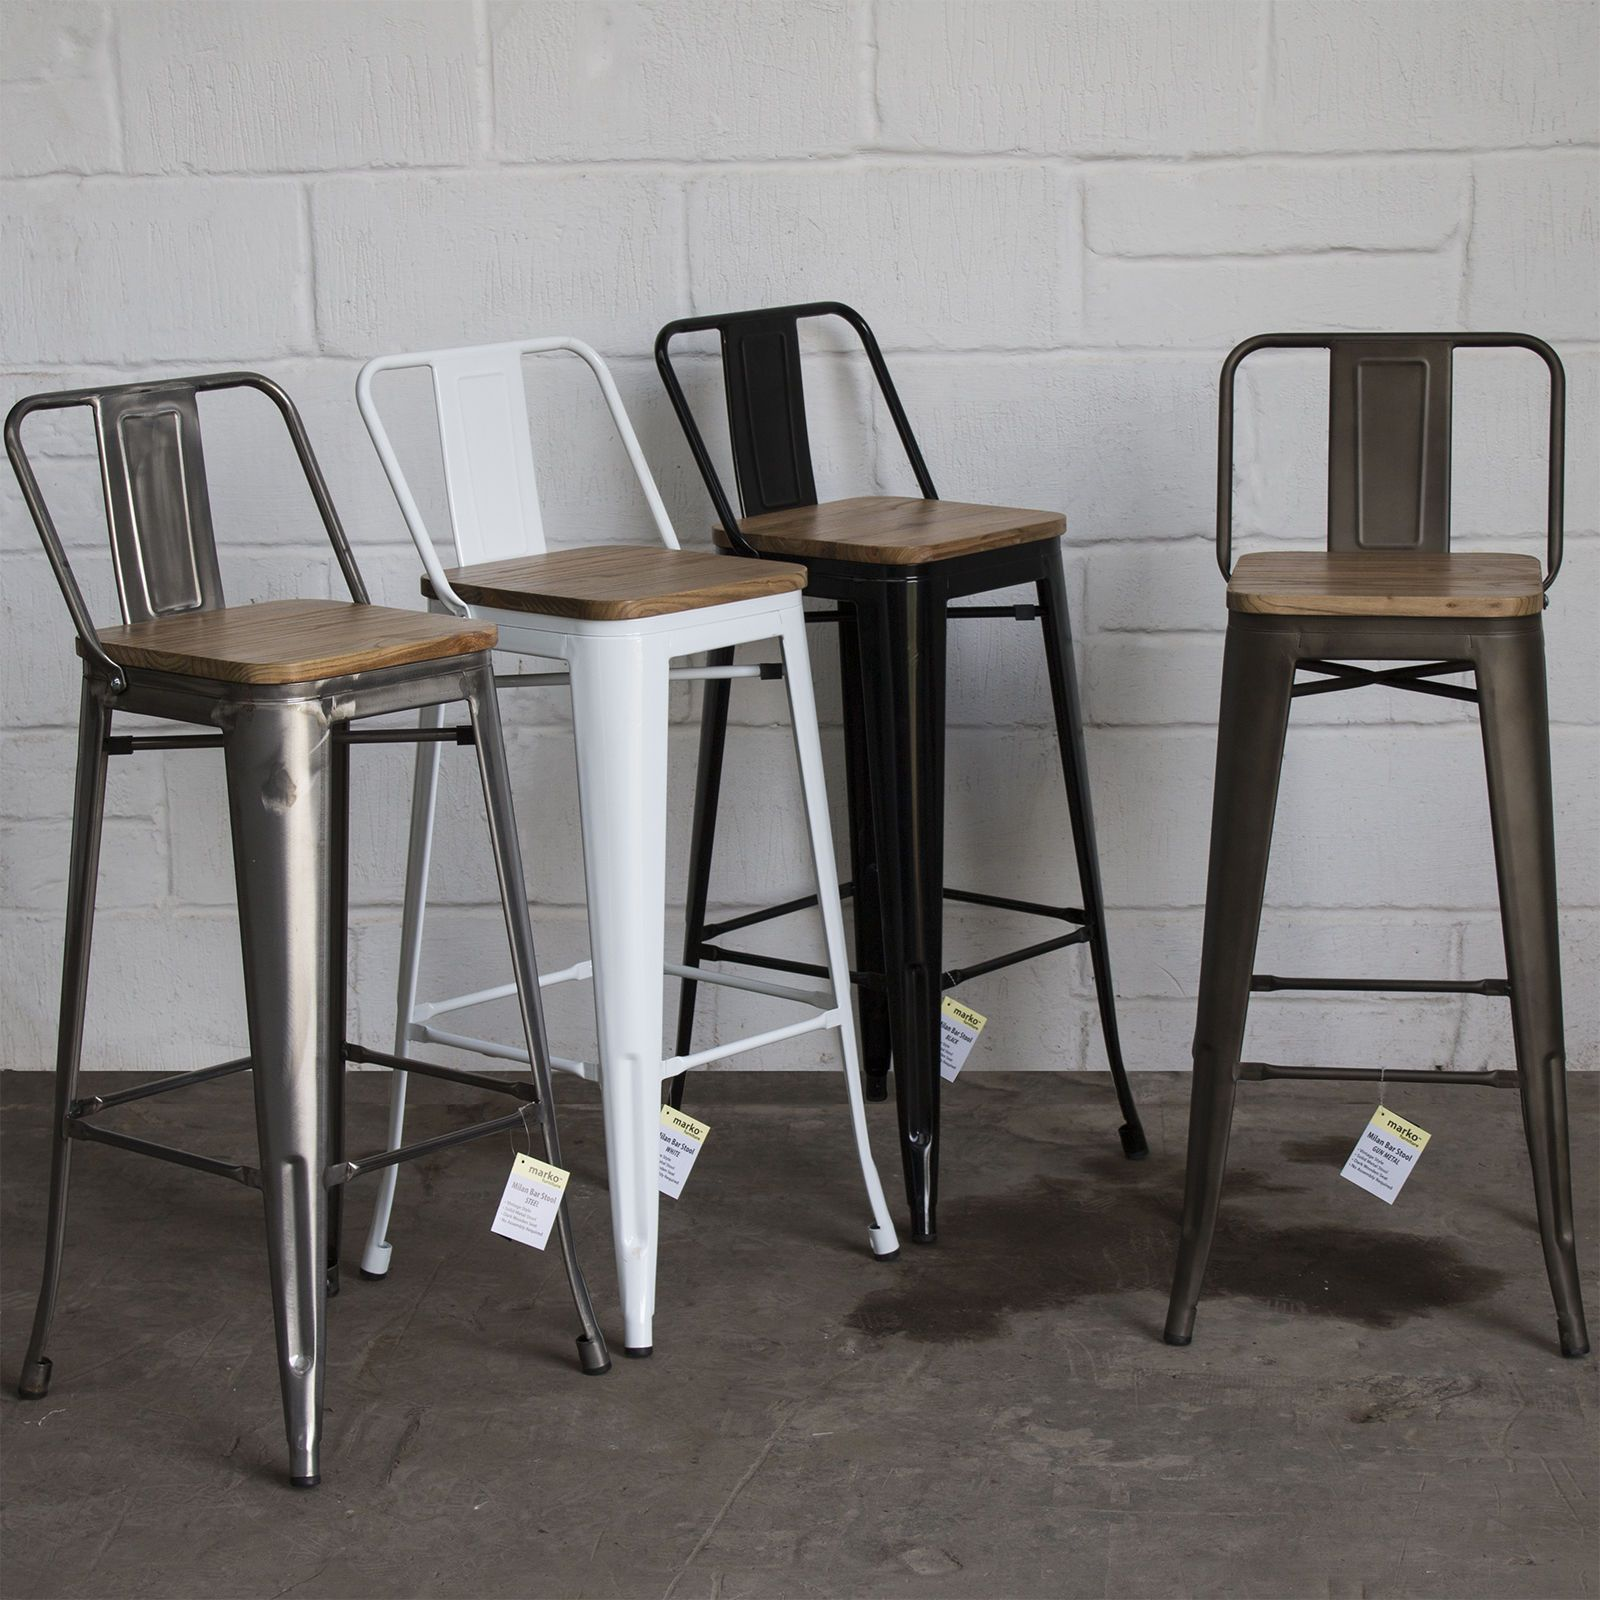 bar picture stool kitchen swivel industrial ba tw chair steel of indstool barstool p vintage retro